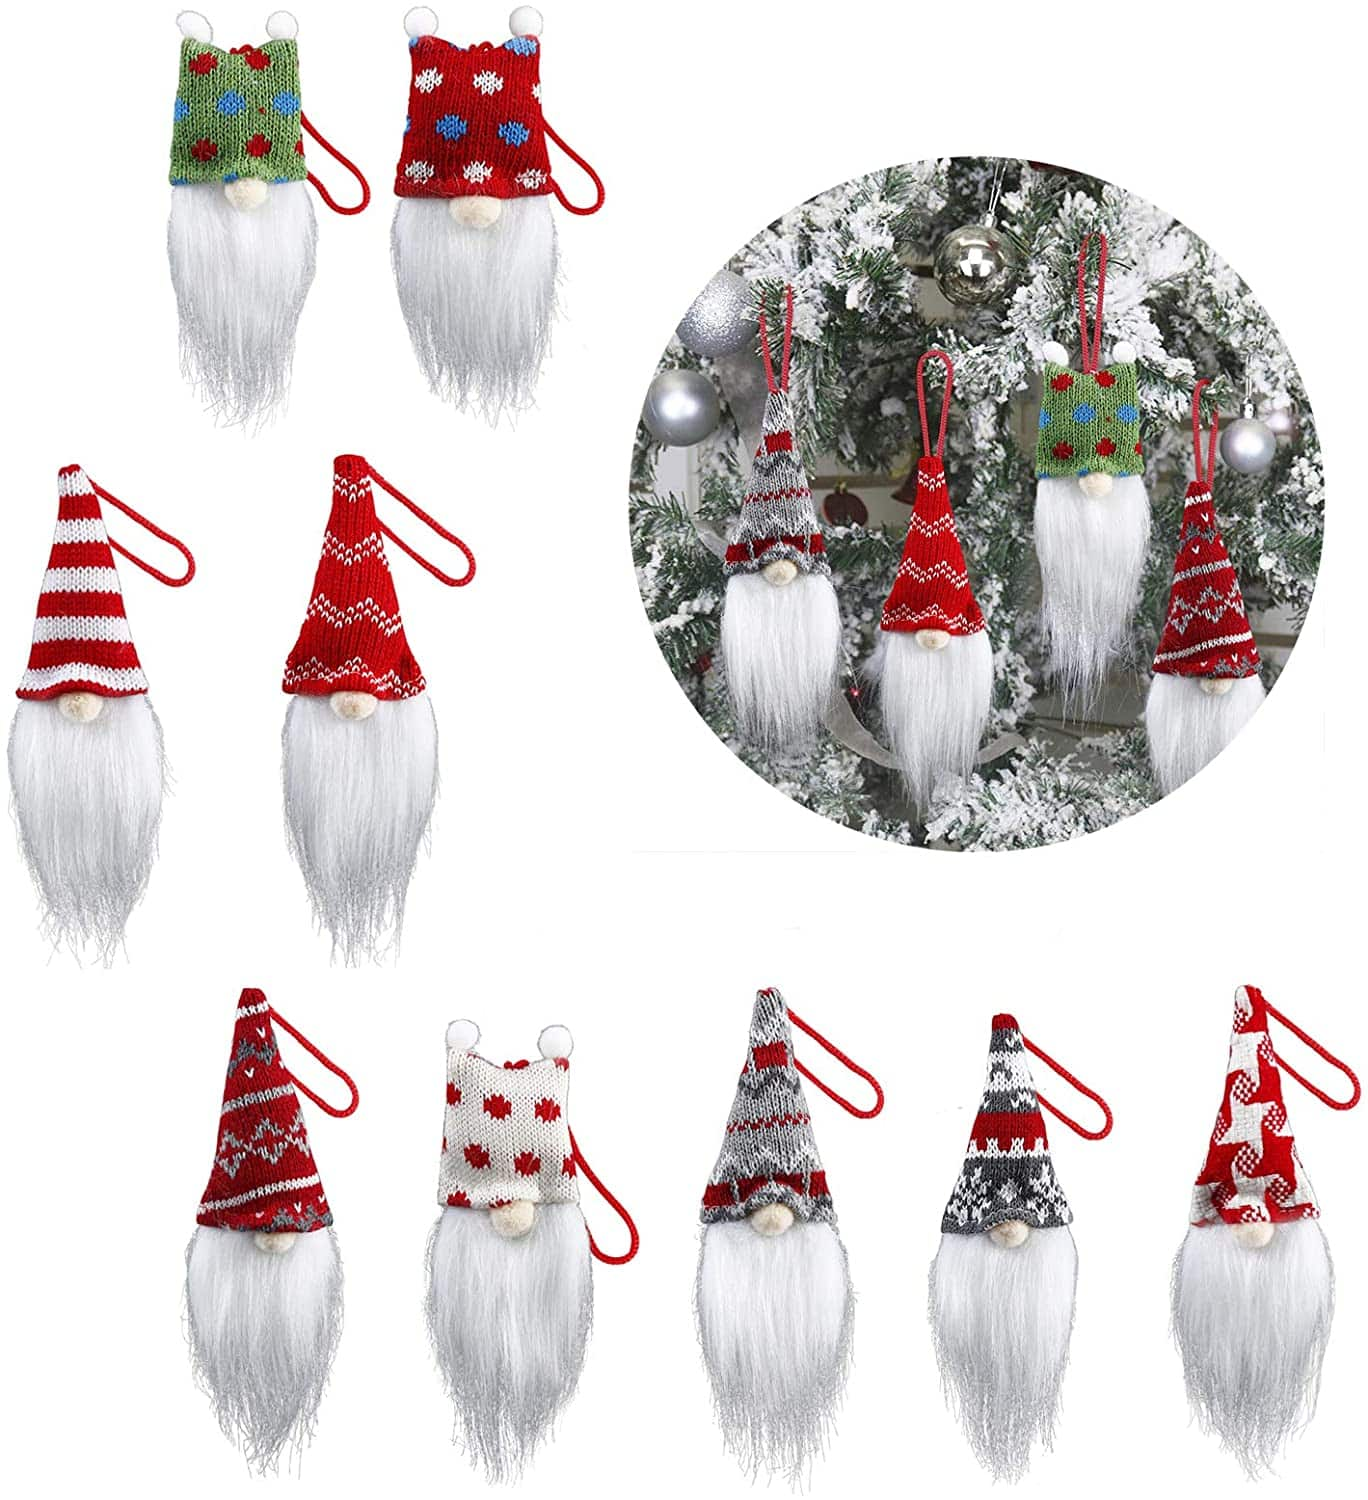 Amazon: 9 pcs Christmas Tree Ornaments sets,super cute clearance price, Just $7.99 (Reg $15.99) after code!